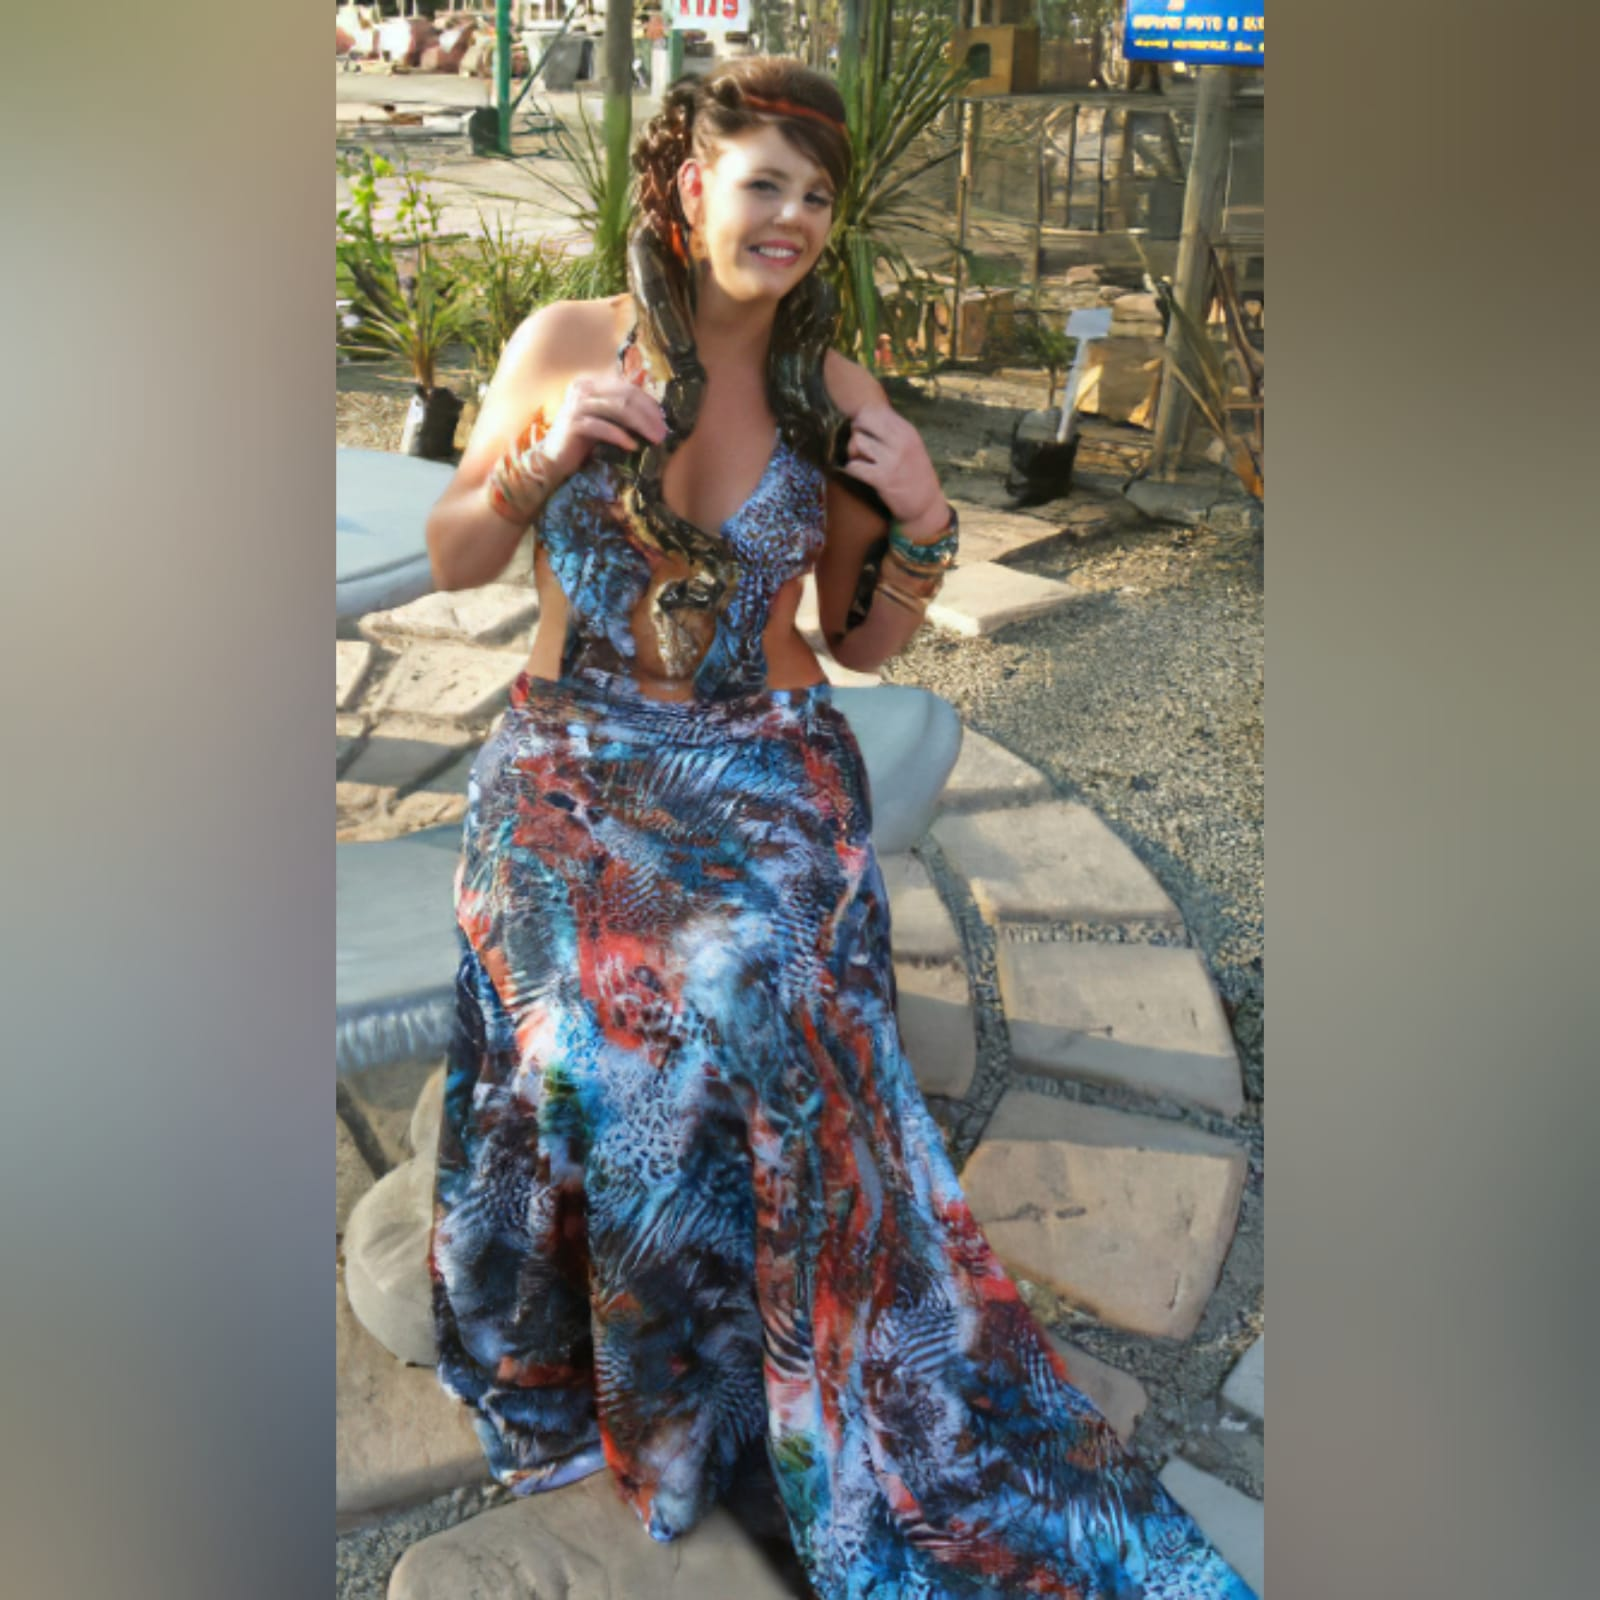 Printed long plunging neckline matric dance dress 2 printed long plunging neckline matric dance dress with a naked back and a train